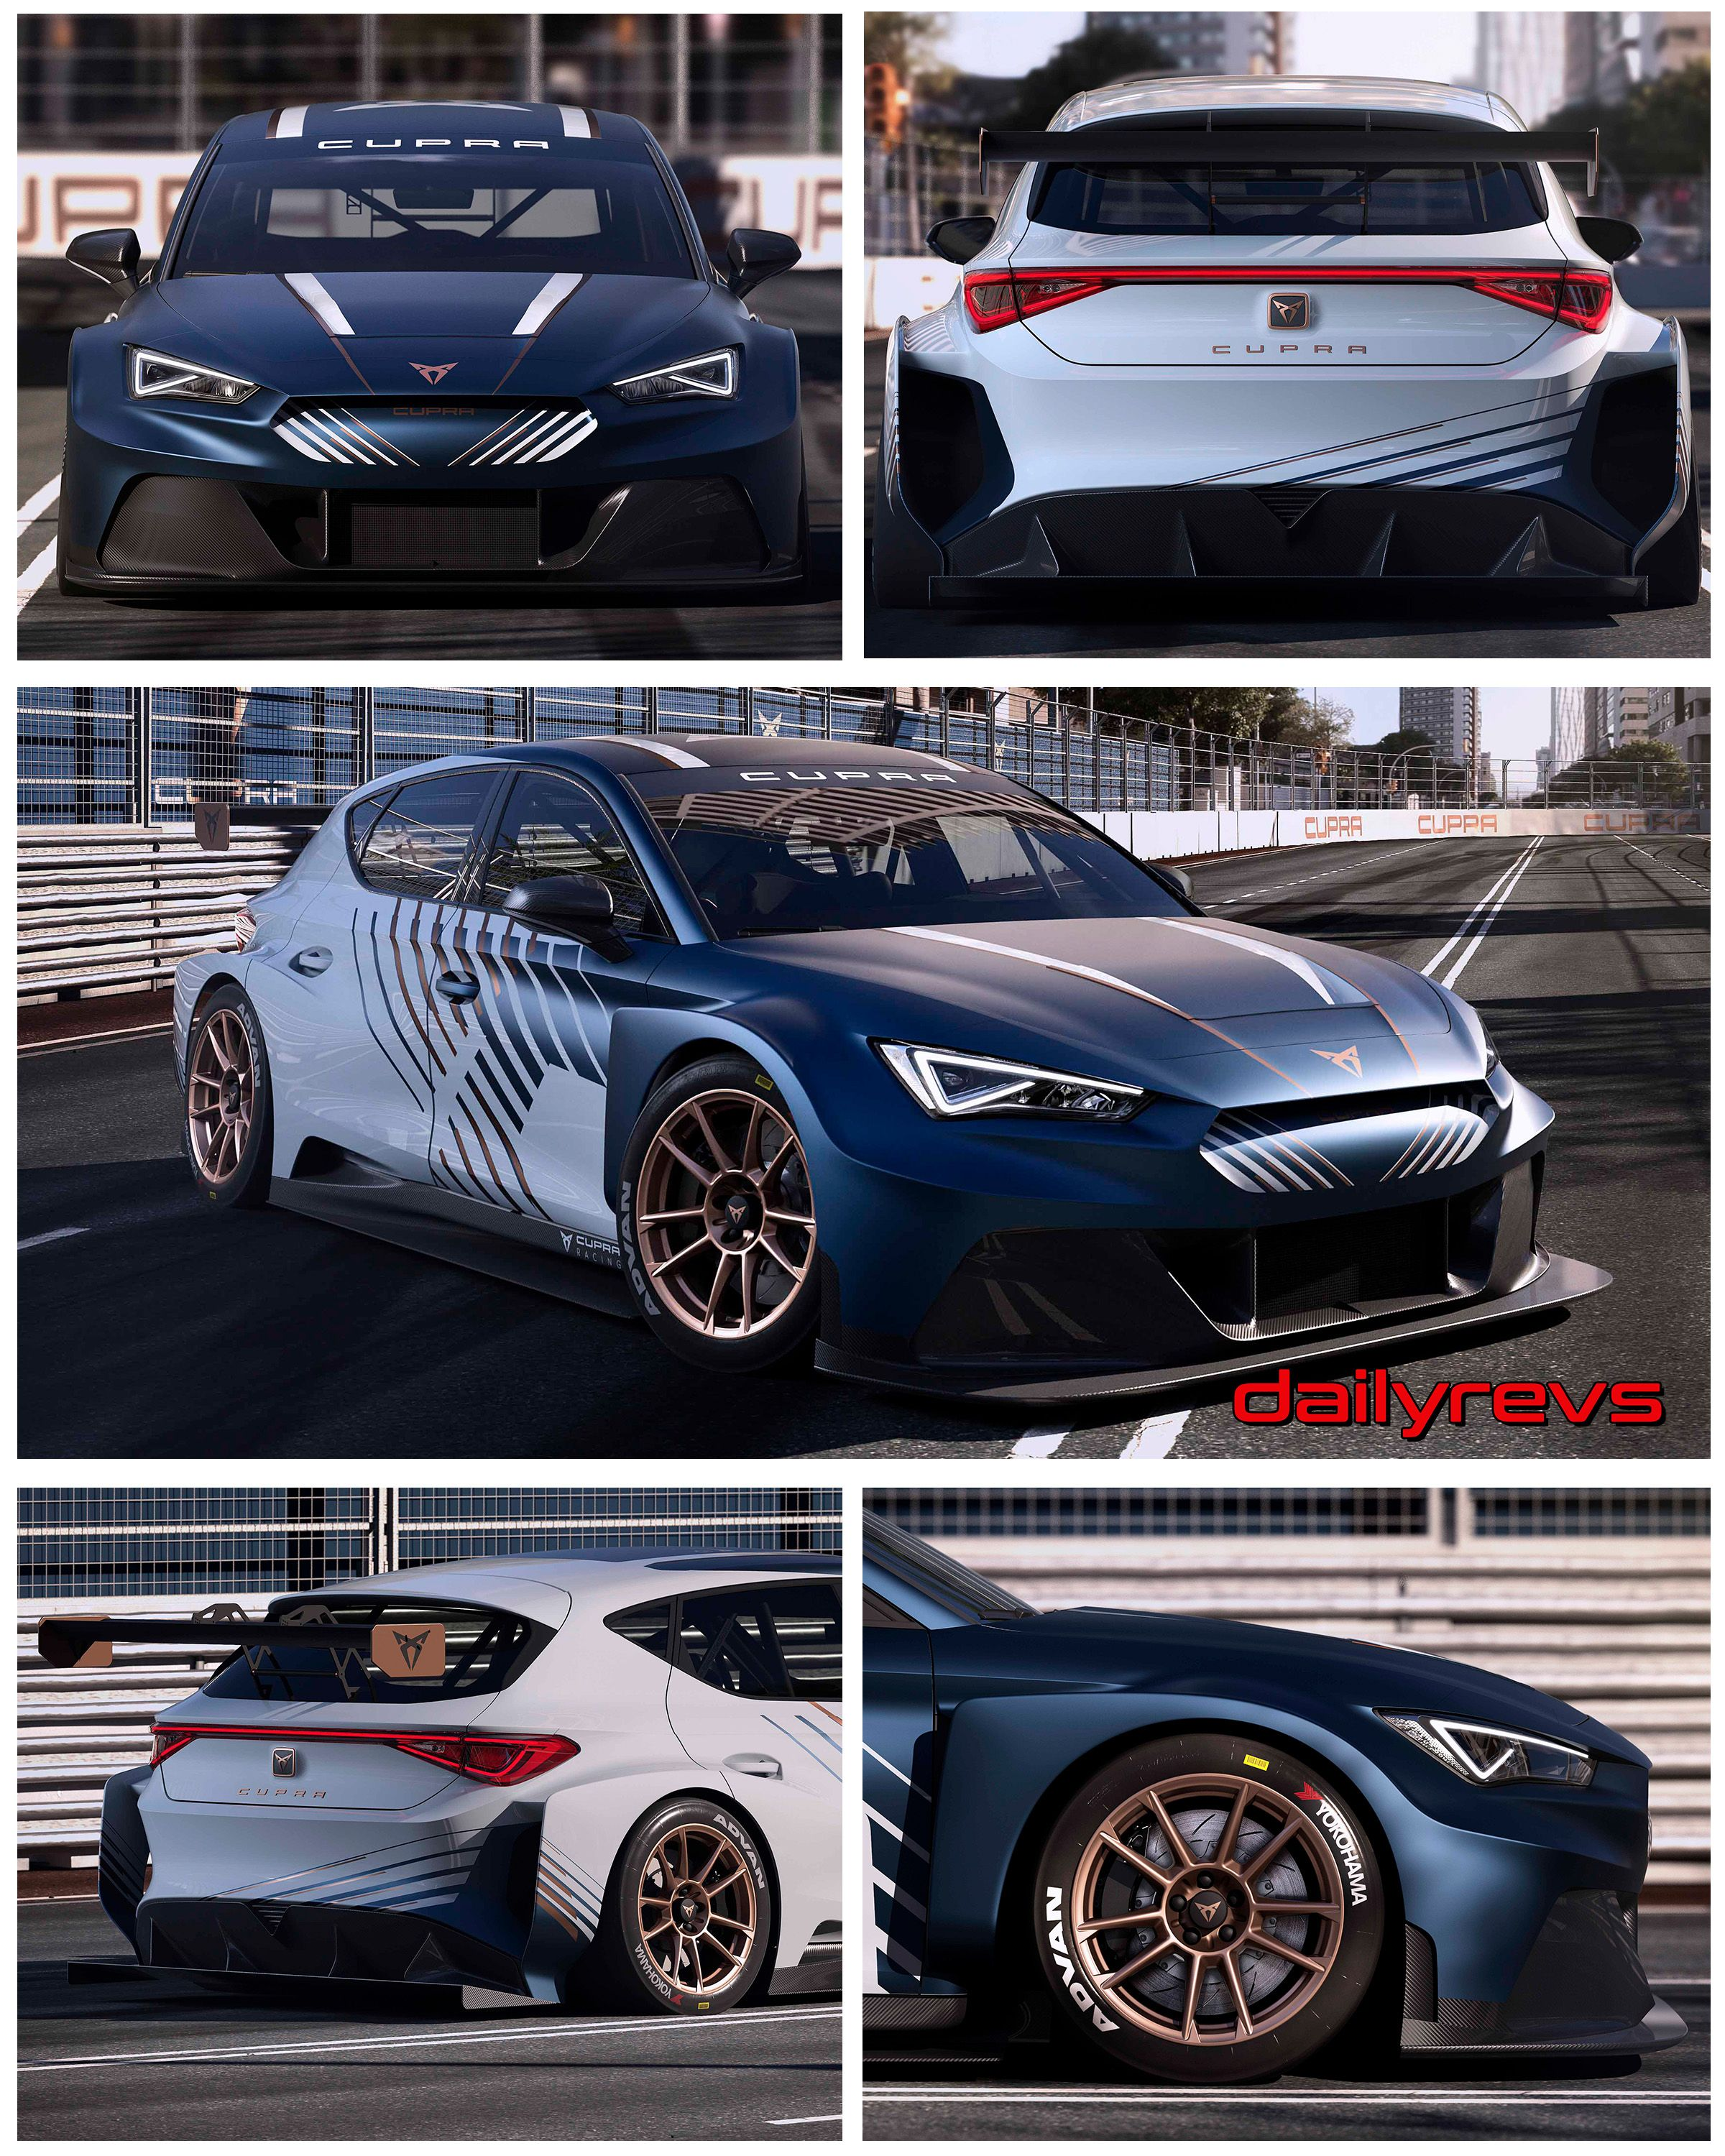 2021 Seat Cupra E Racer Hd Pictures Videos Specs Information In 2020 Seat Cupra Seating Racer